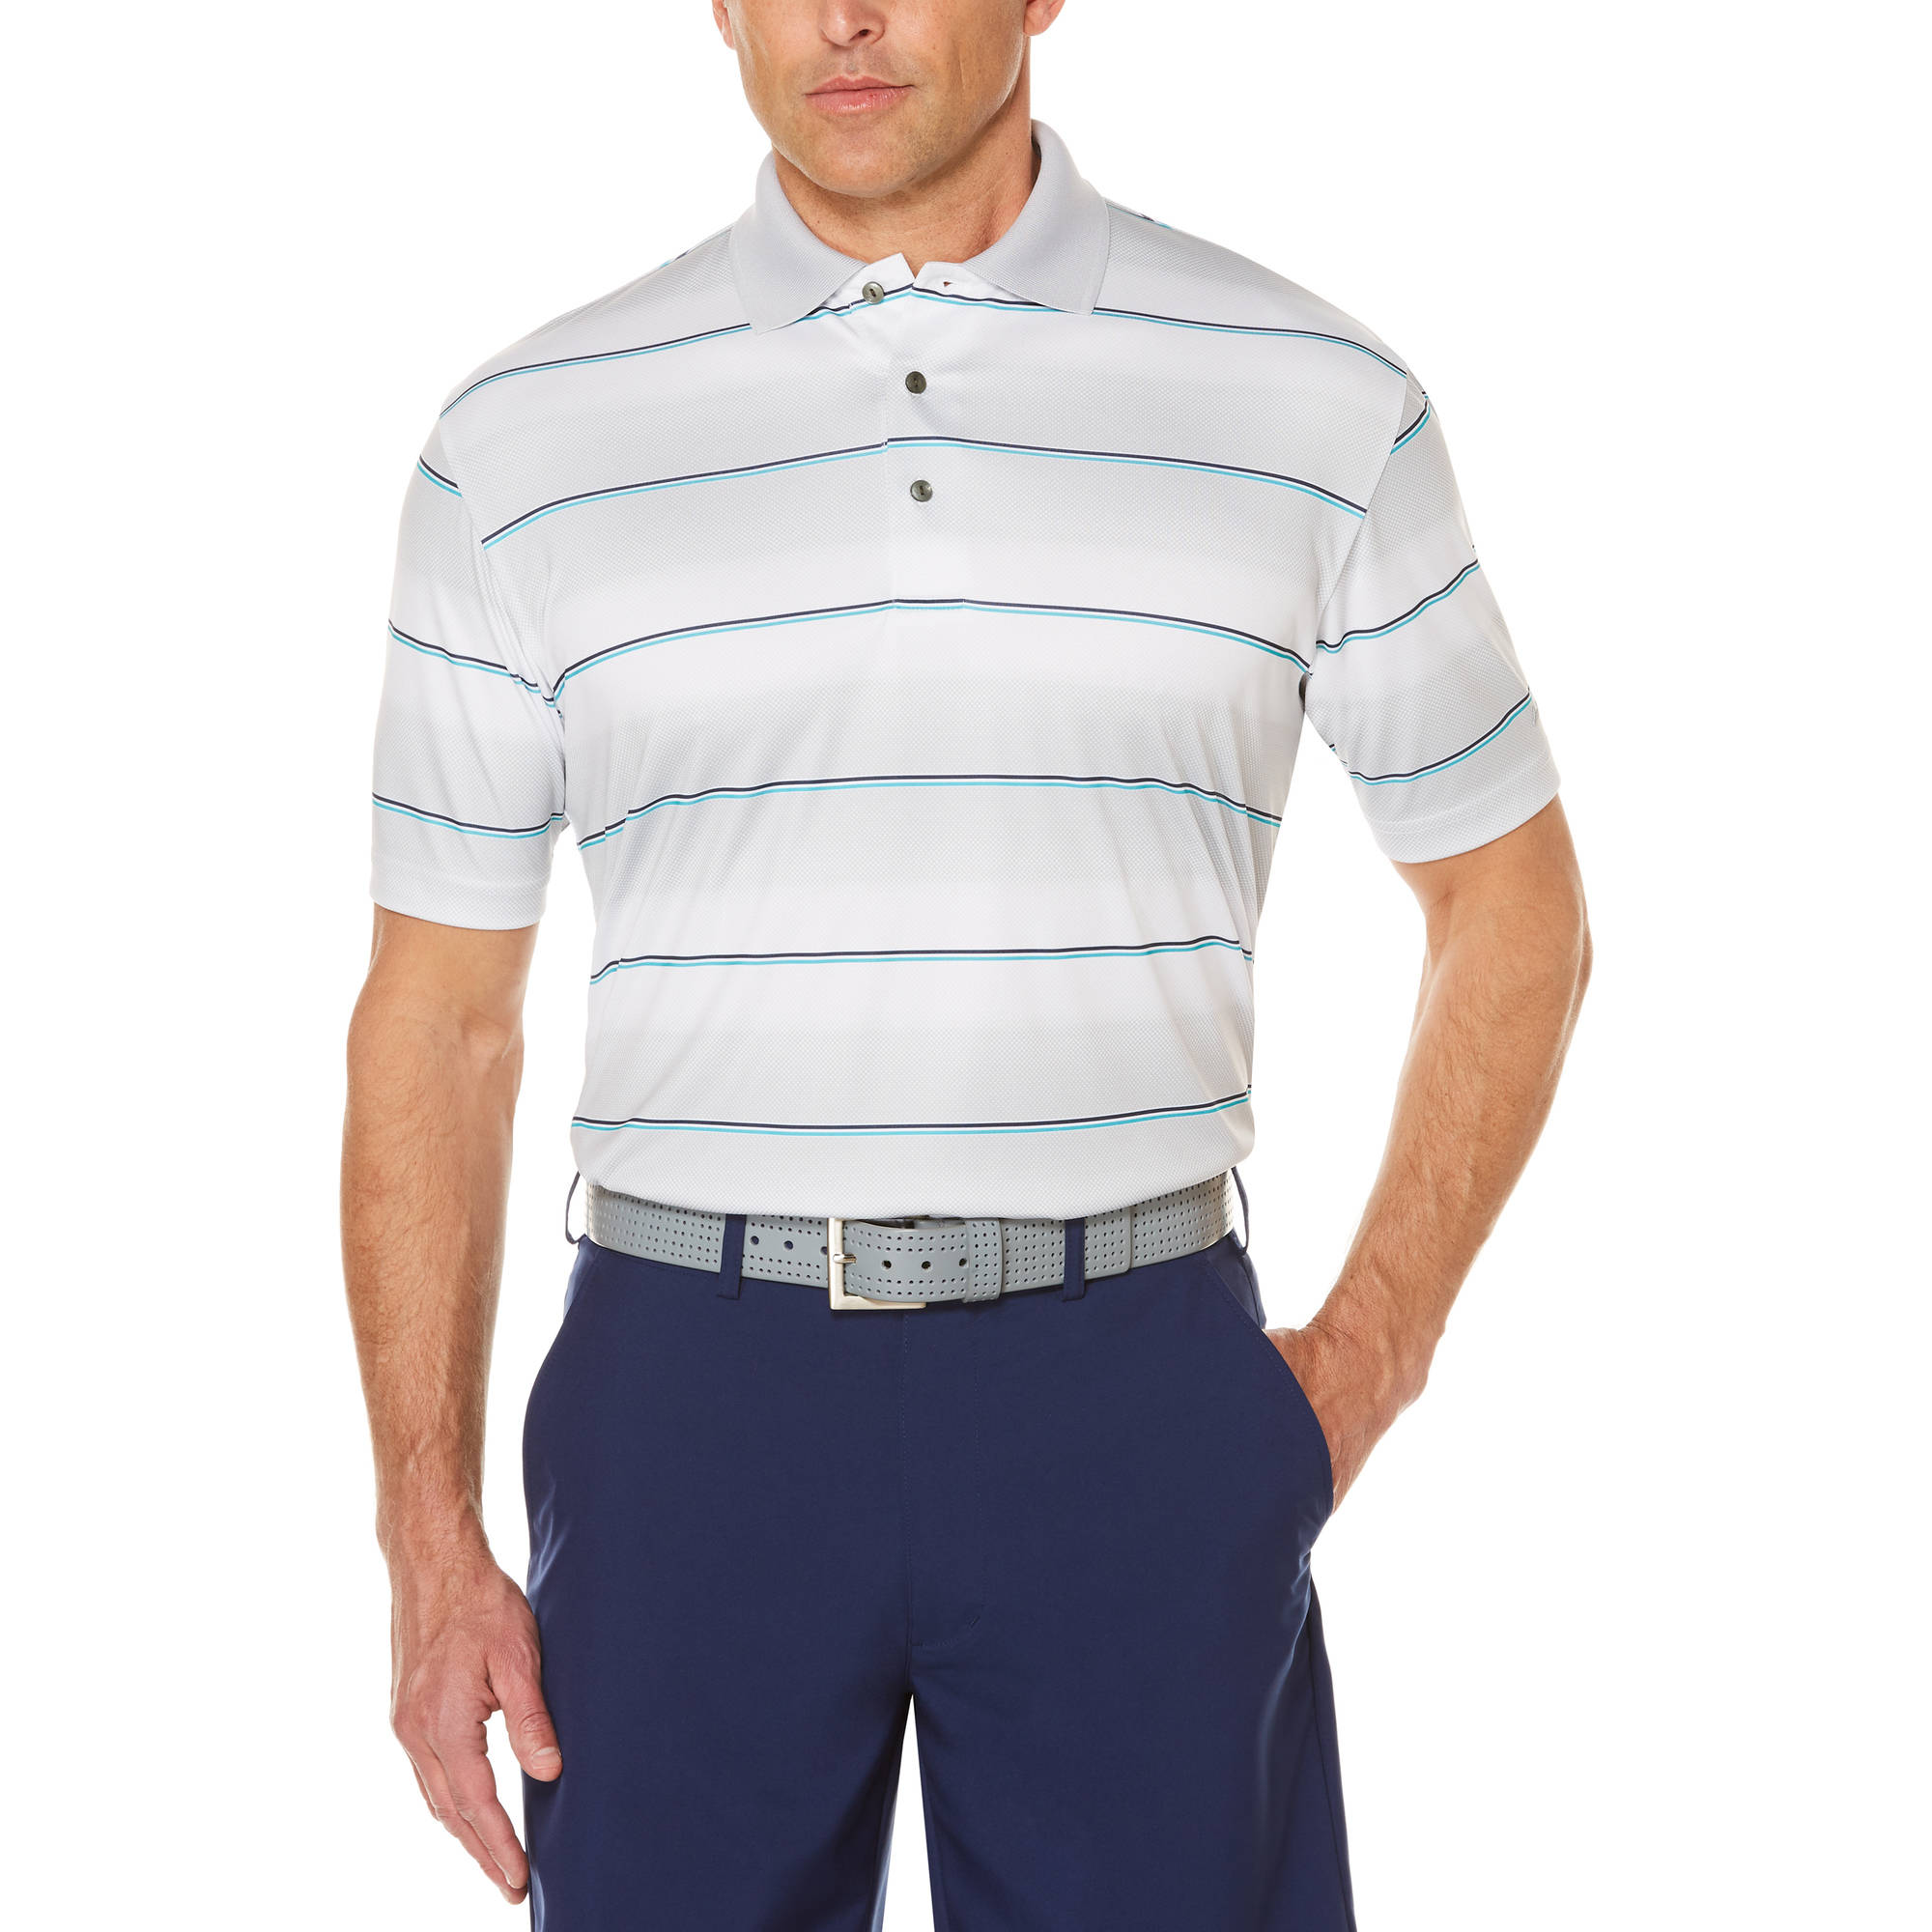 Men's Performance Short Sleeve Textured Golf Polo